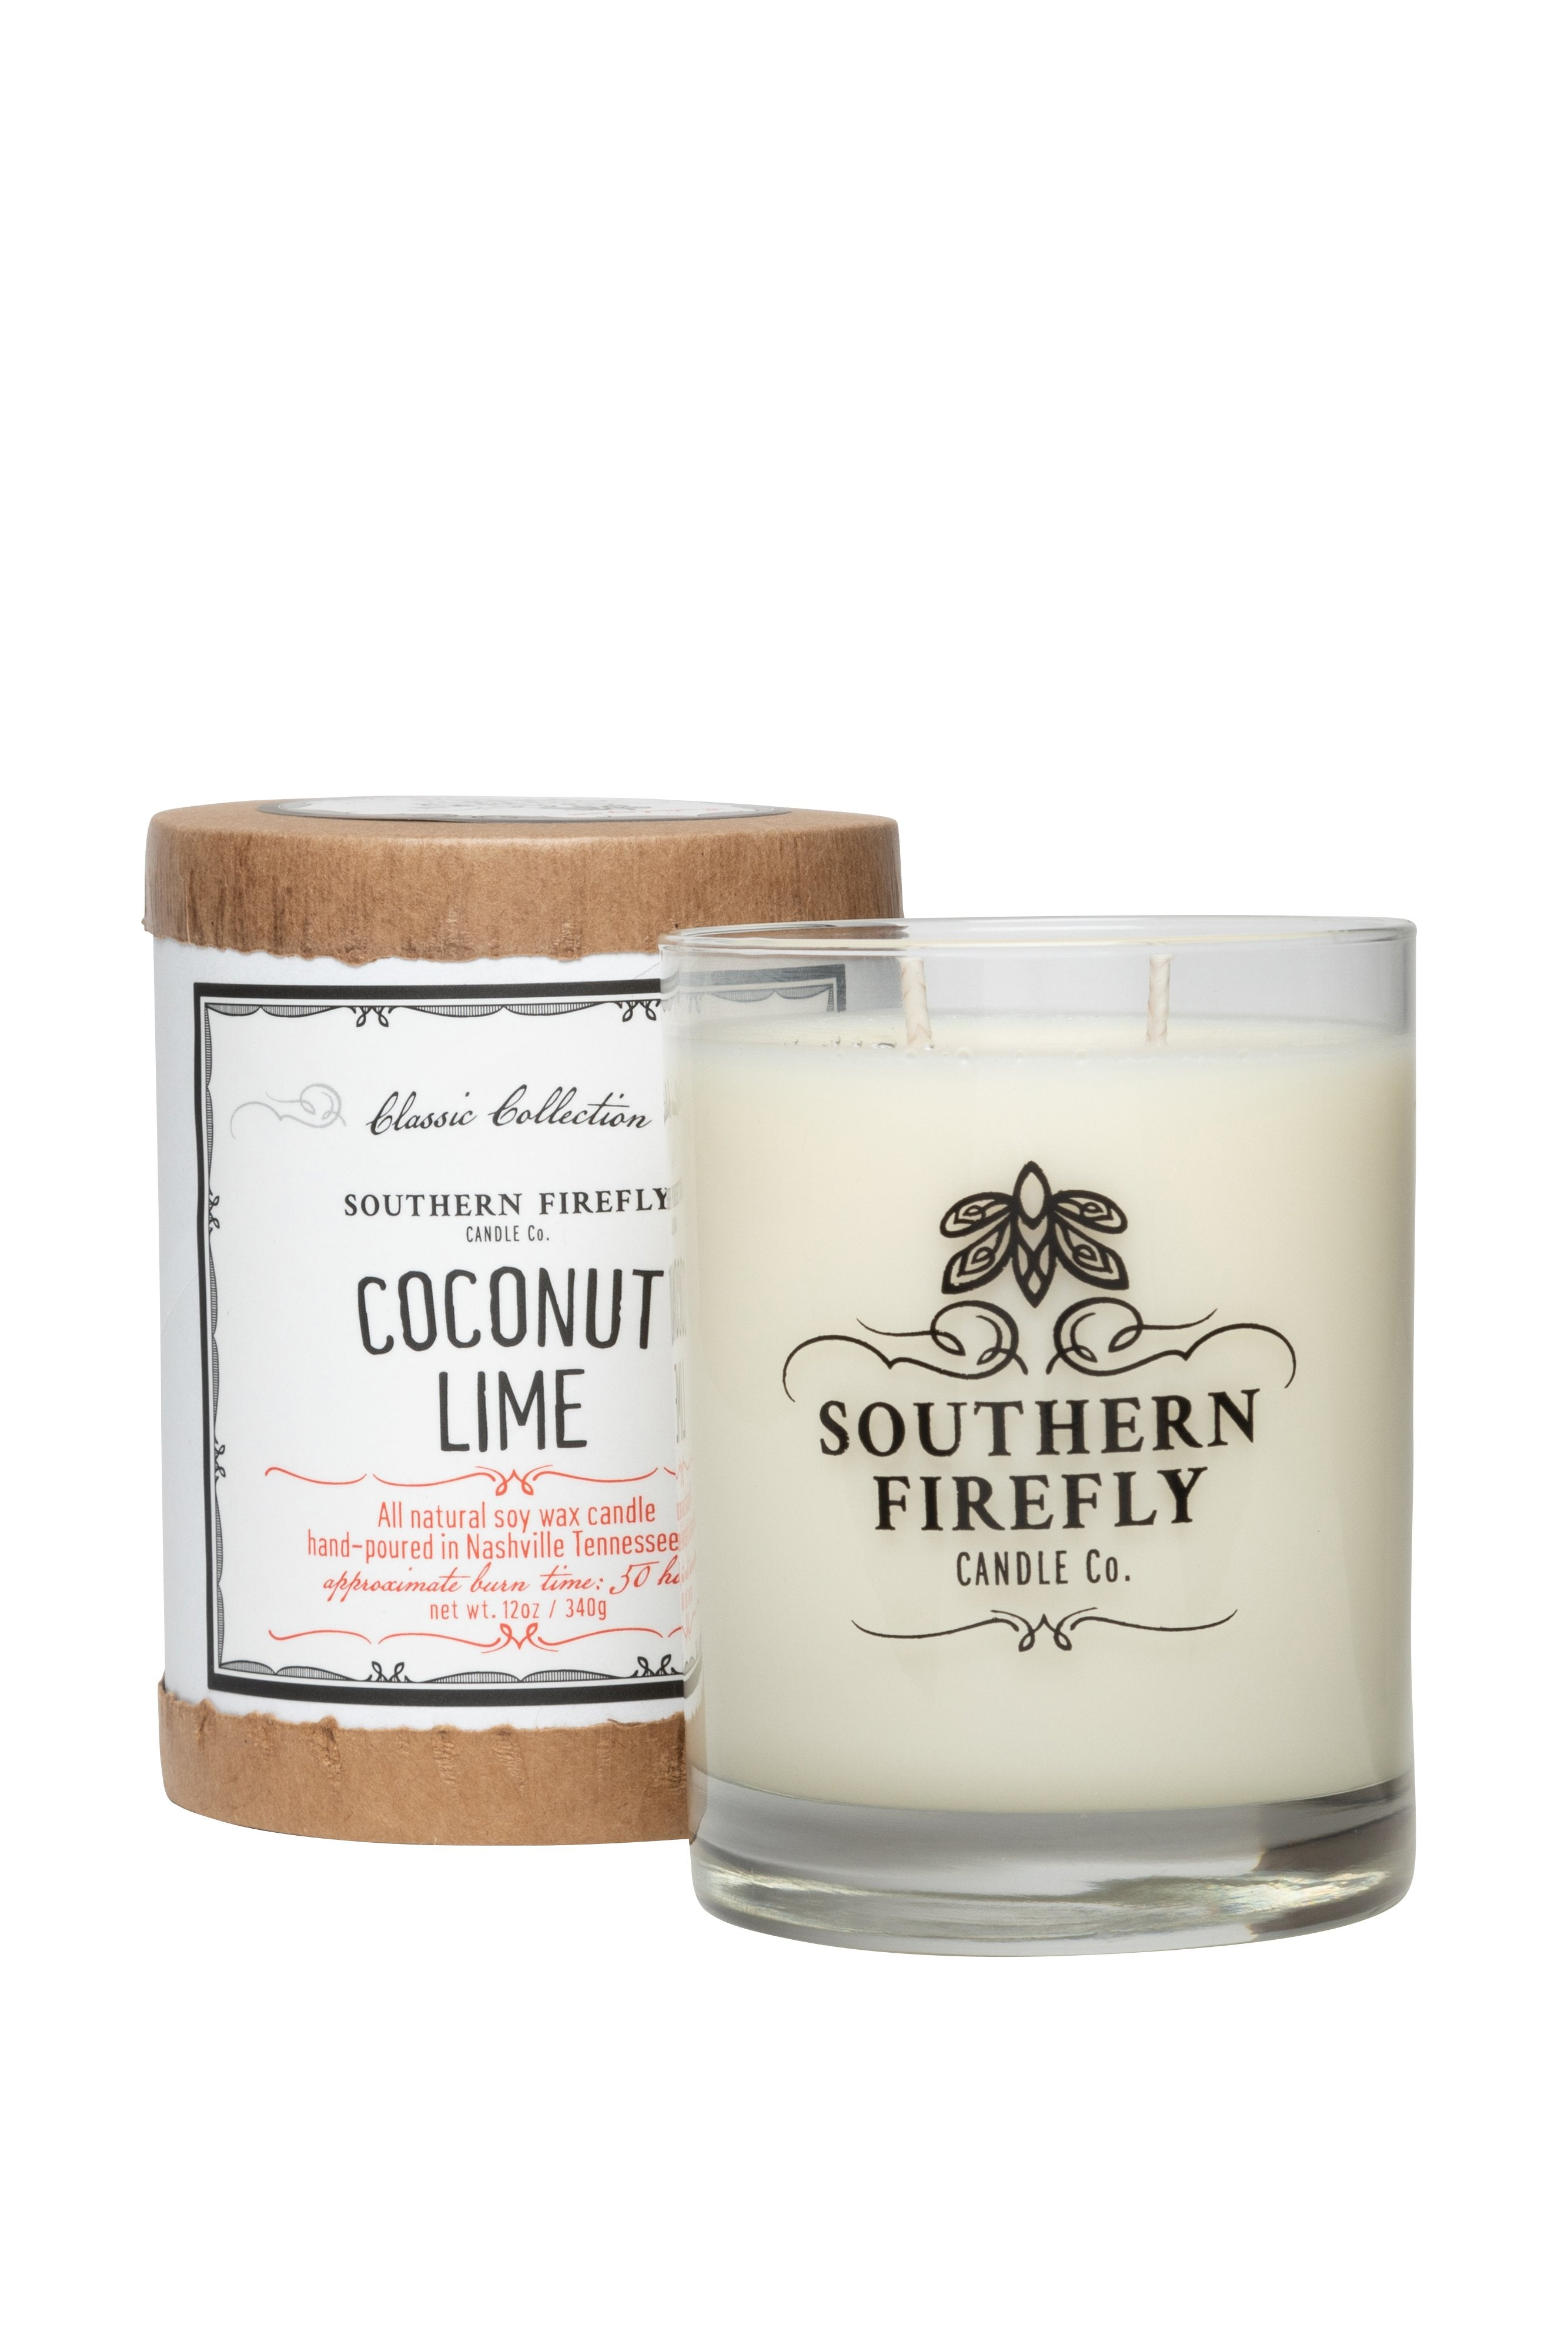 Classic Collection - Southern Firefly Candle Co